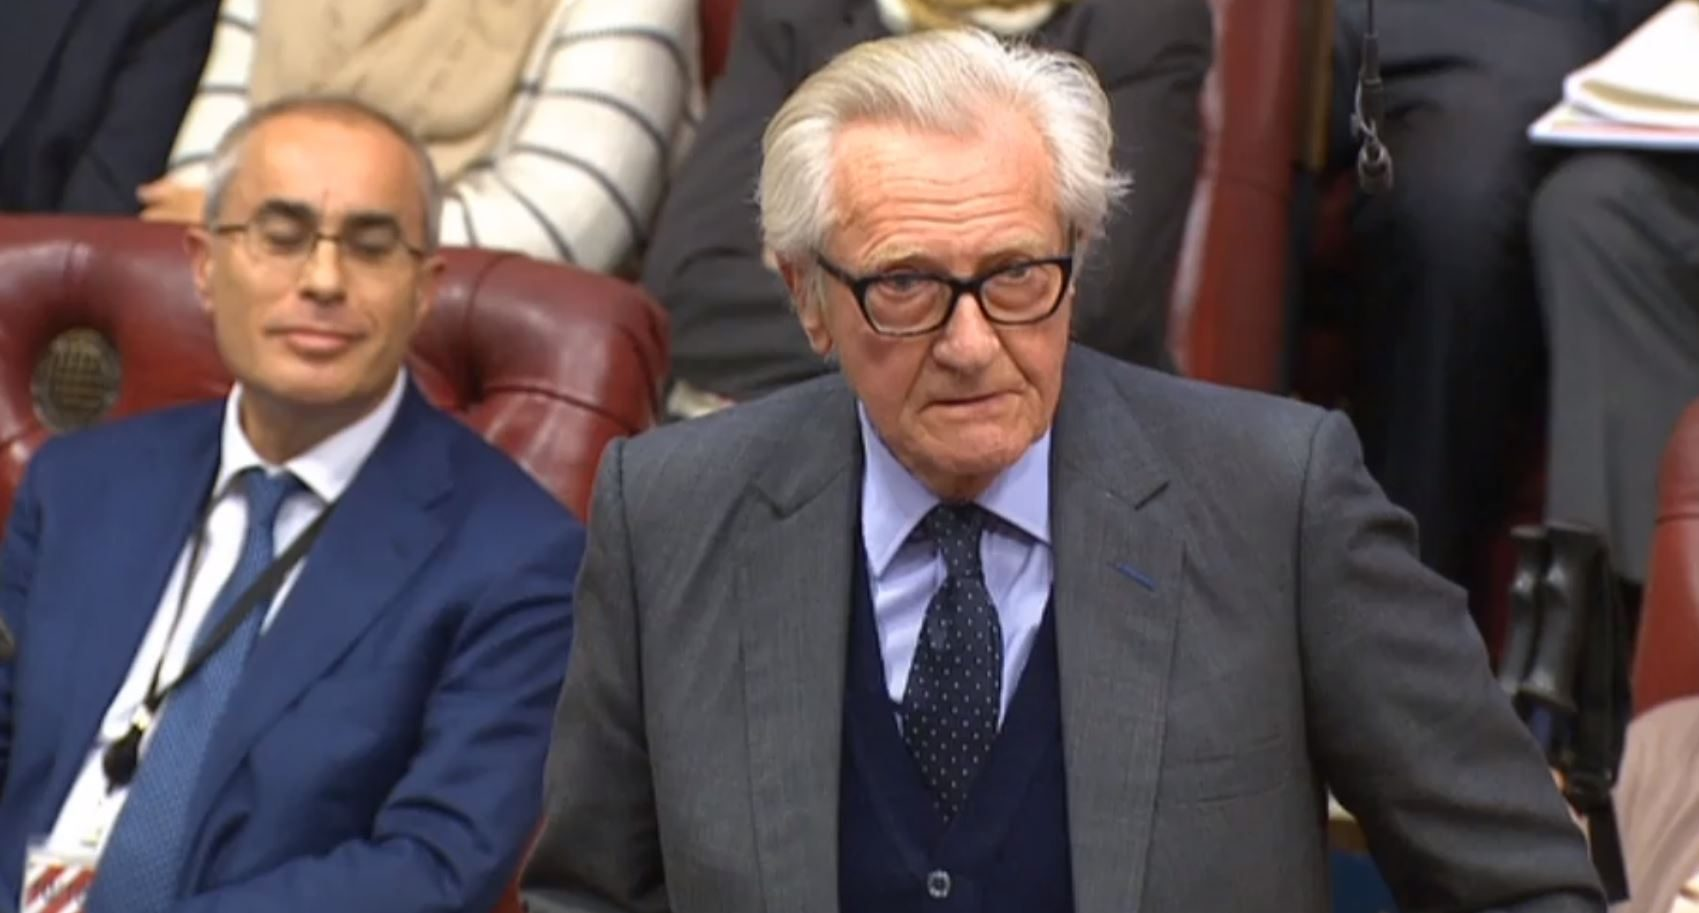 Lord Heseltine speaks in the House of Lord, as they debate the Brexit Bill.